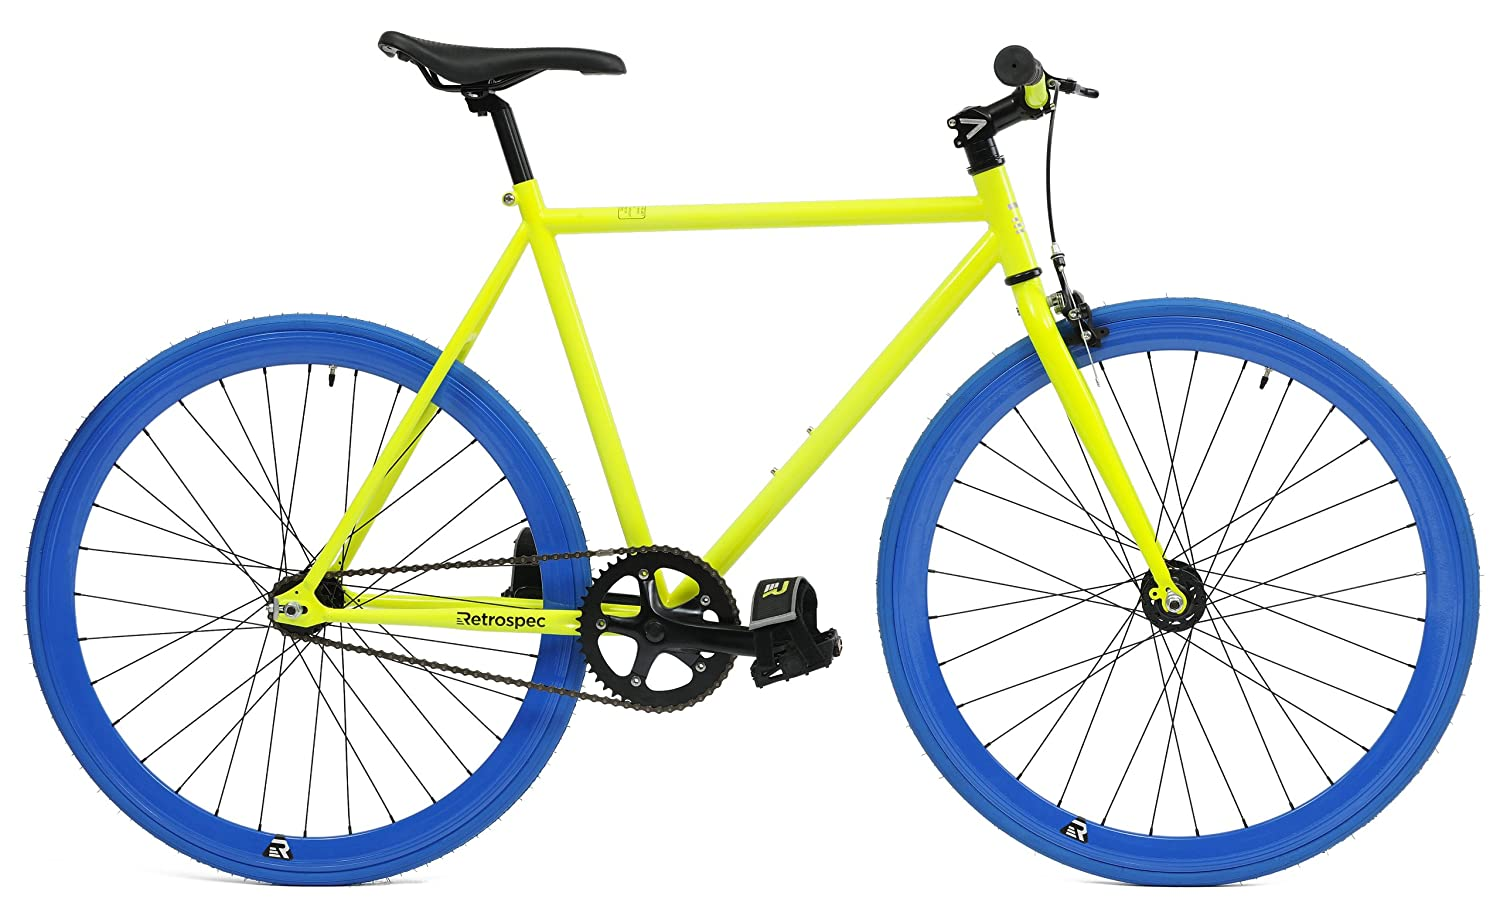 So many color choices in Fixie bikes